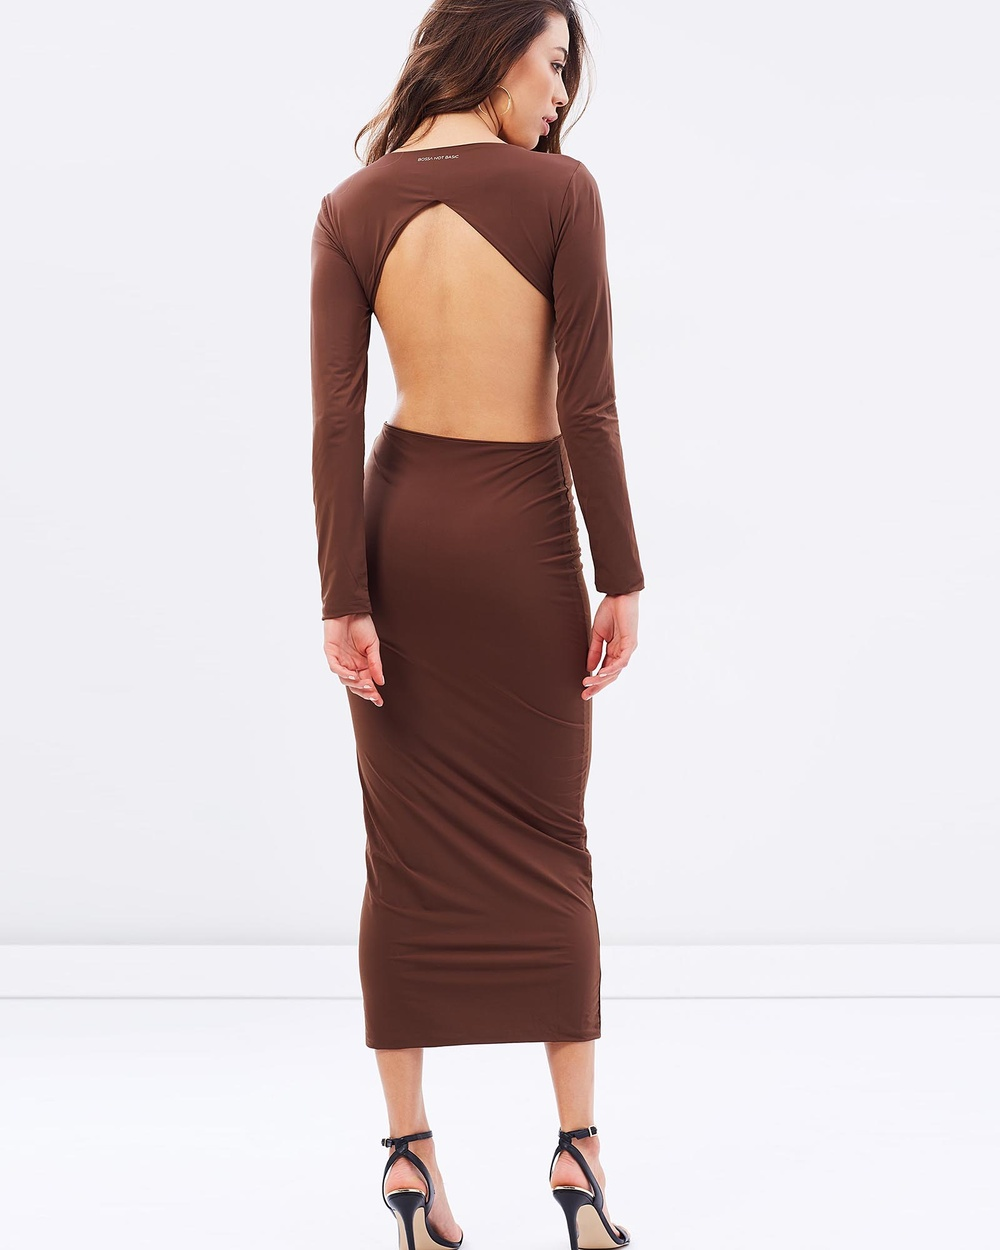 BSSA Undone Dress Bodycon Dresses Chocolate Undone Dress